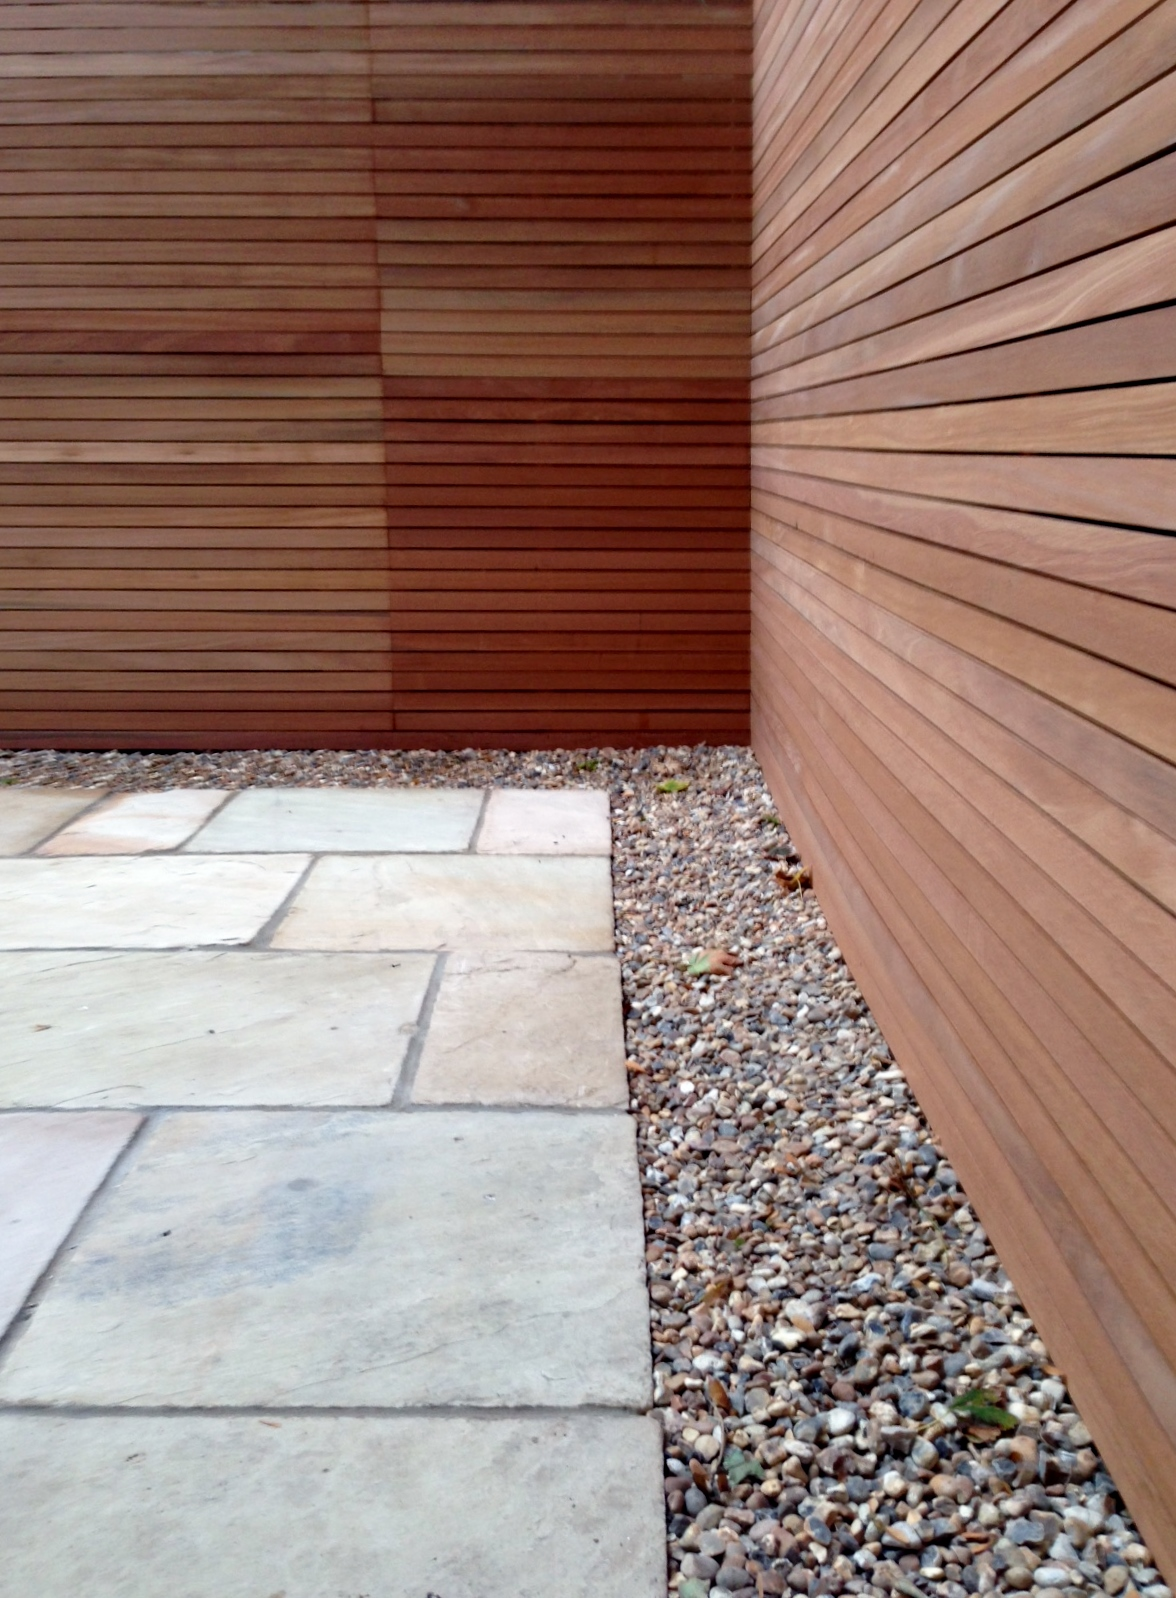 clapham garden design sandstone paving hardwood privacy screen shingle trellis fence modern low maintenance ideas (13)